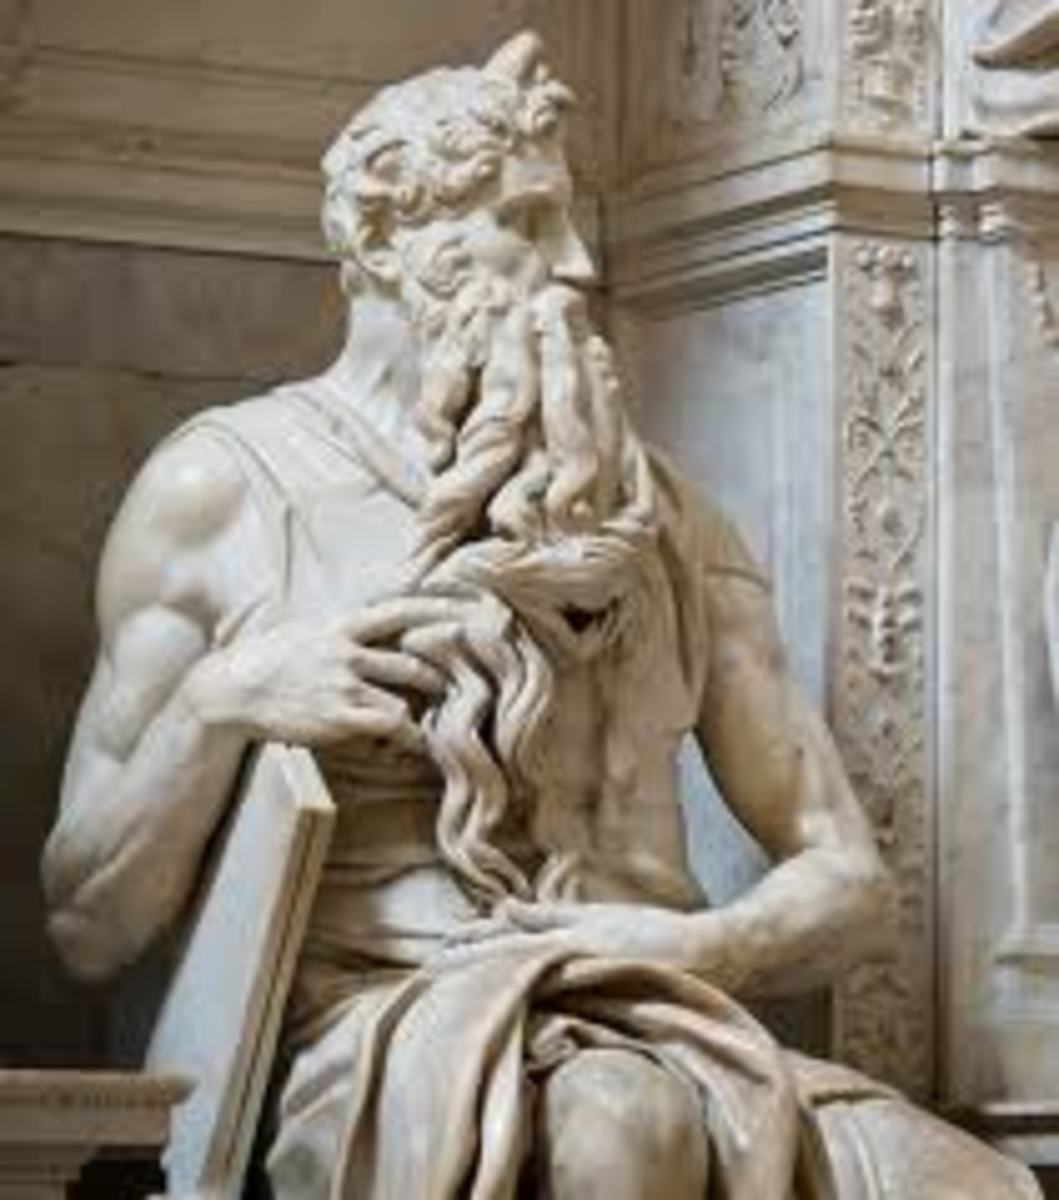 It is said that when Michelangelo finished this statue, he said why don't you speak? Because his statue was so lifelike. Now today we are talking about the creation of Adam from dust and my observation is that only God might make a statue speak